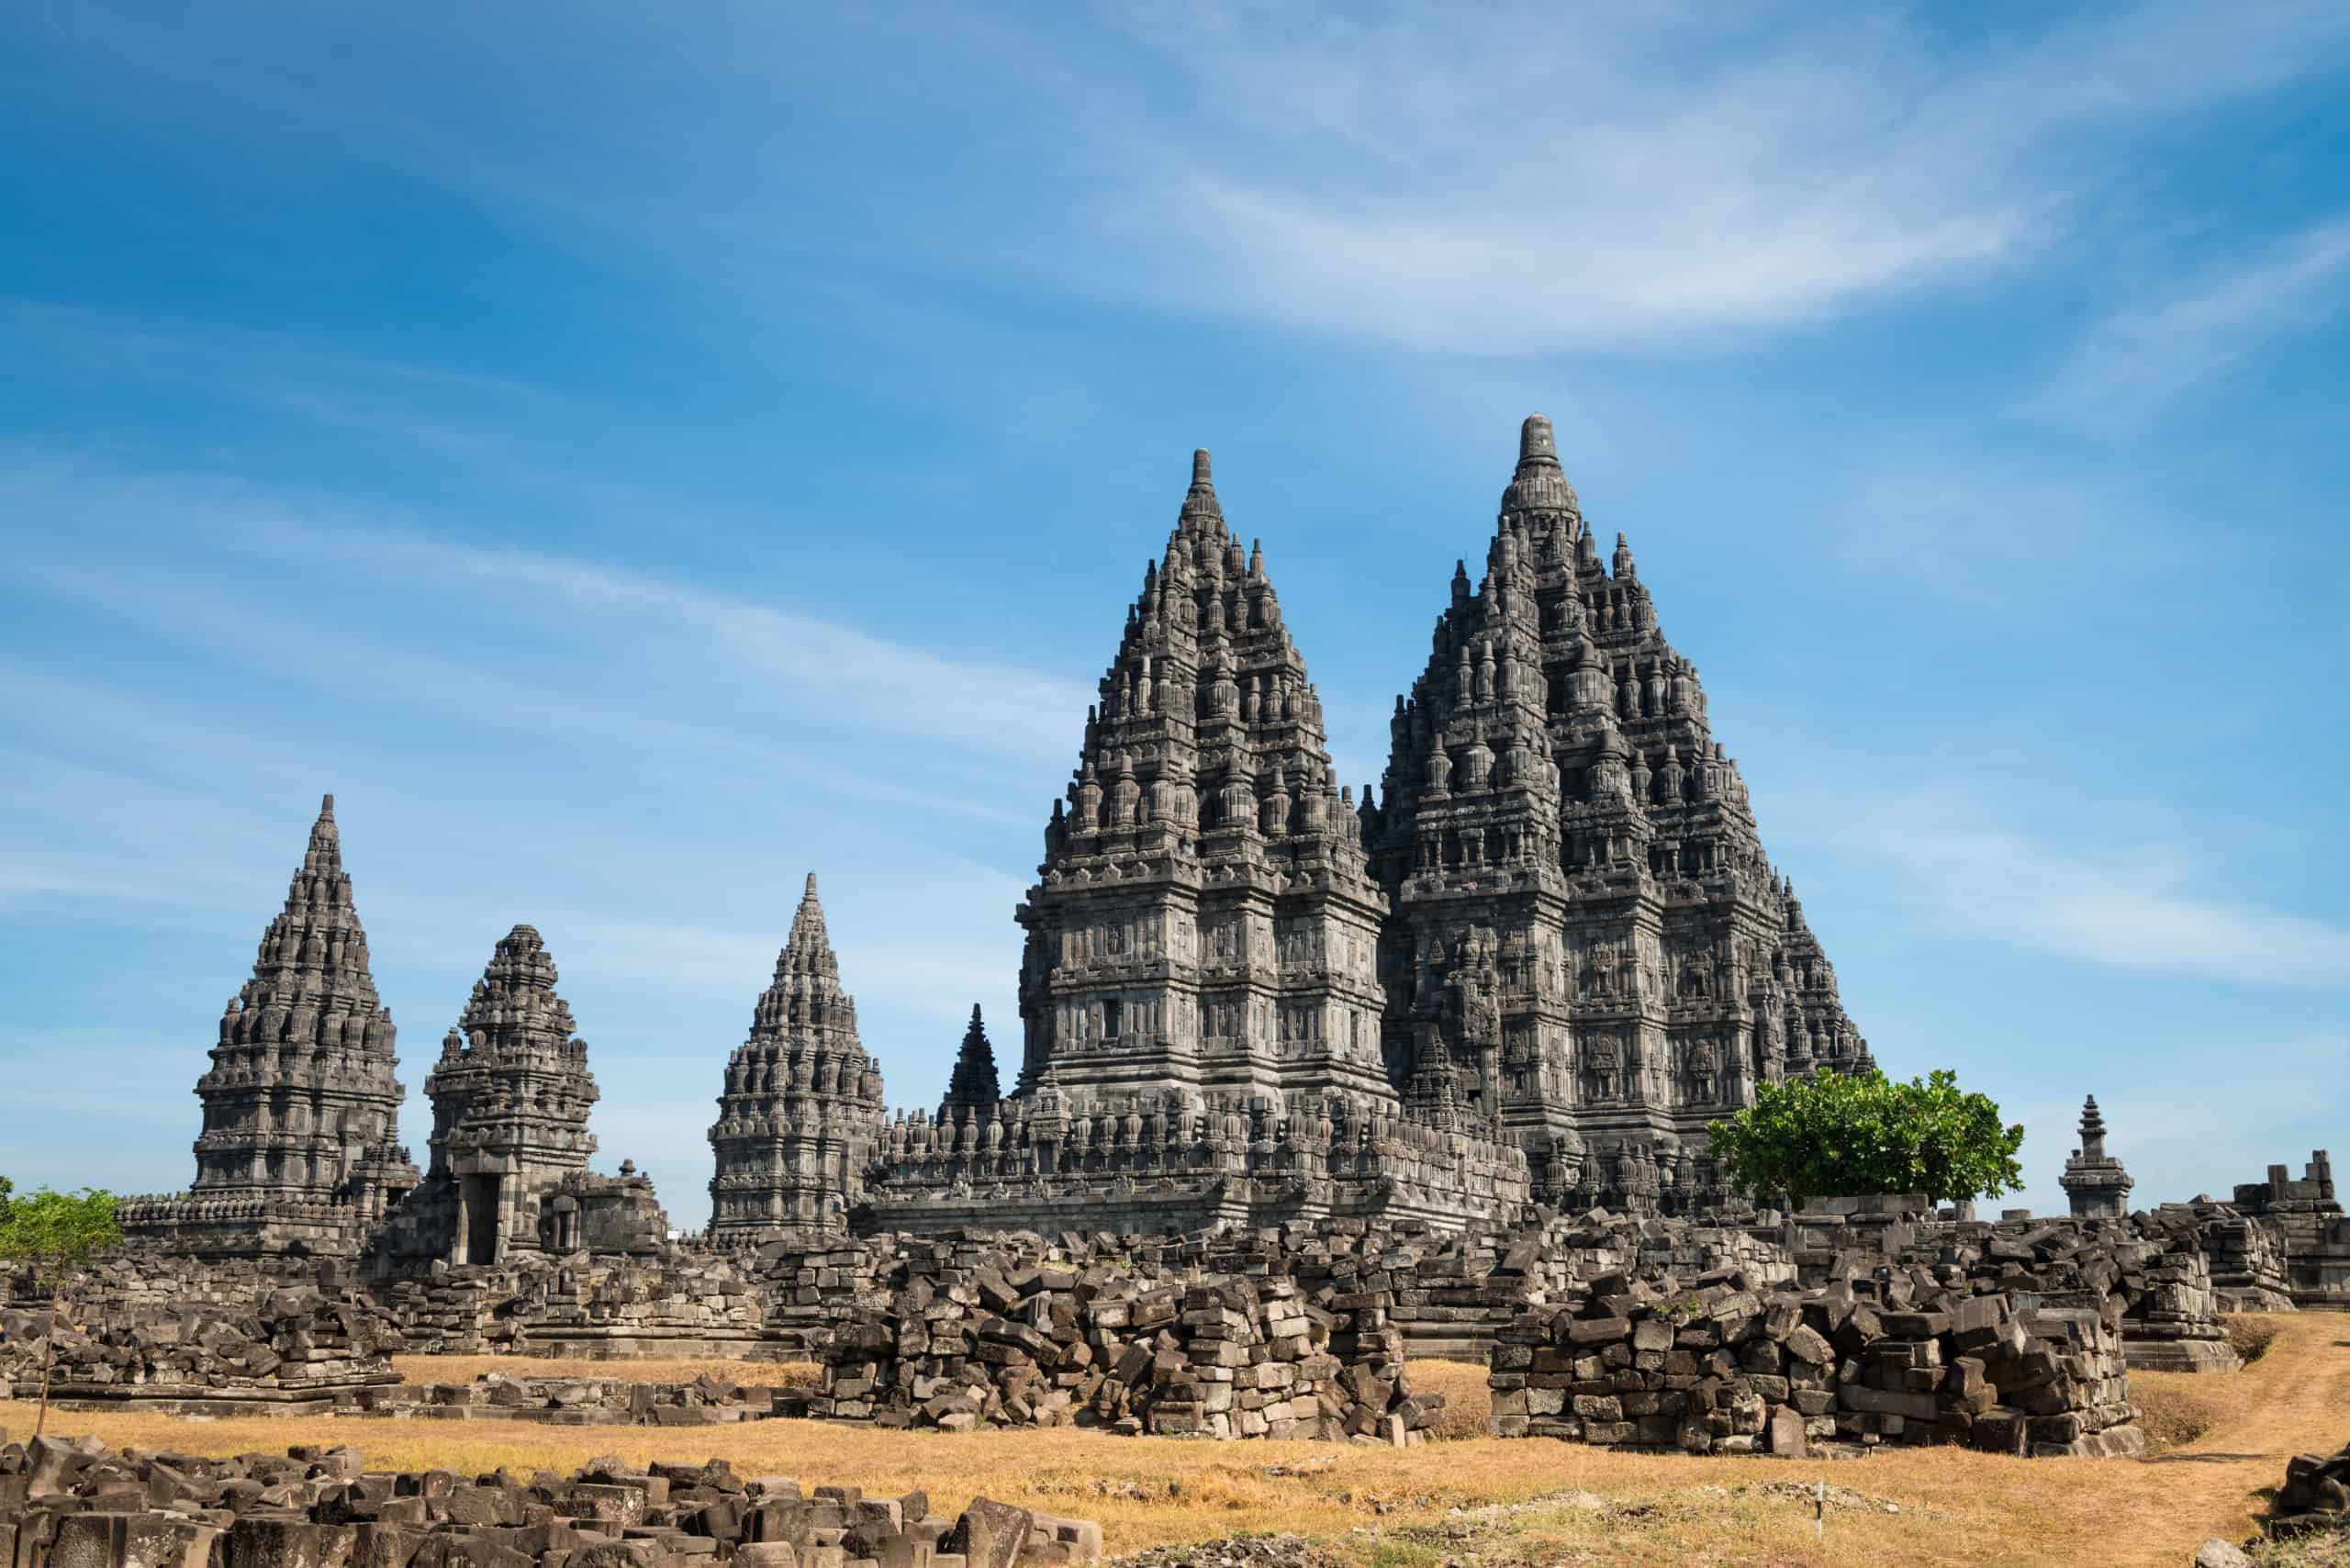 Candi Prambanan or Candi Rara Jonggrang is a 9th-century Hindu temple compound in Central Java, Indonesia, dedicated to the Trimurti, the expression of God as the Creator (Brahma), the Preserver (Vishnu) and the Destroyer (Shiva).